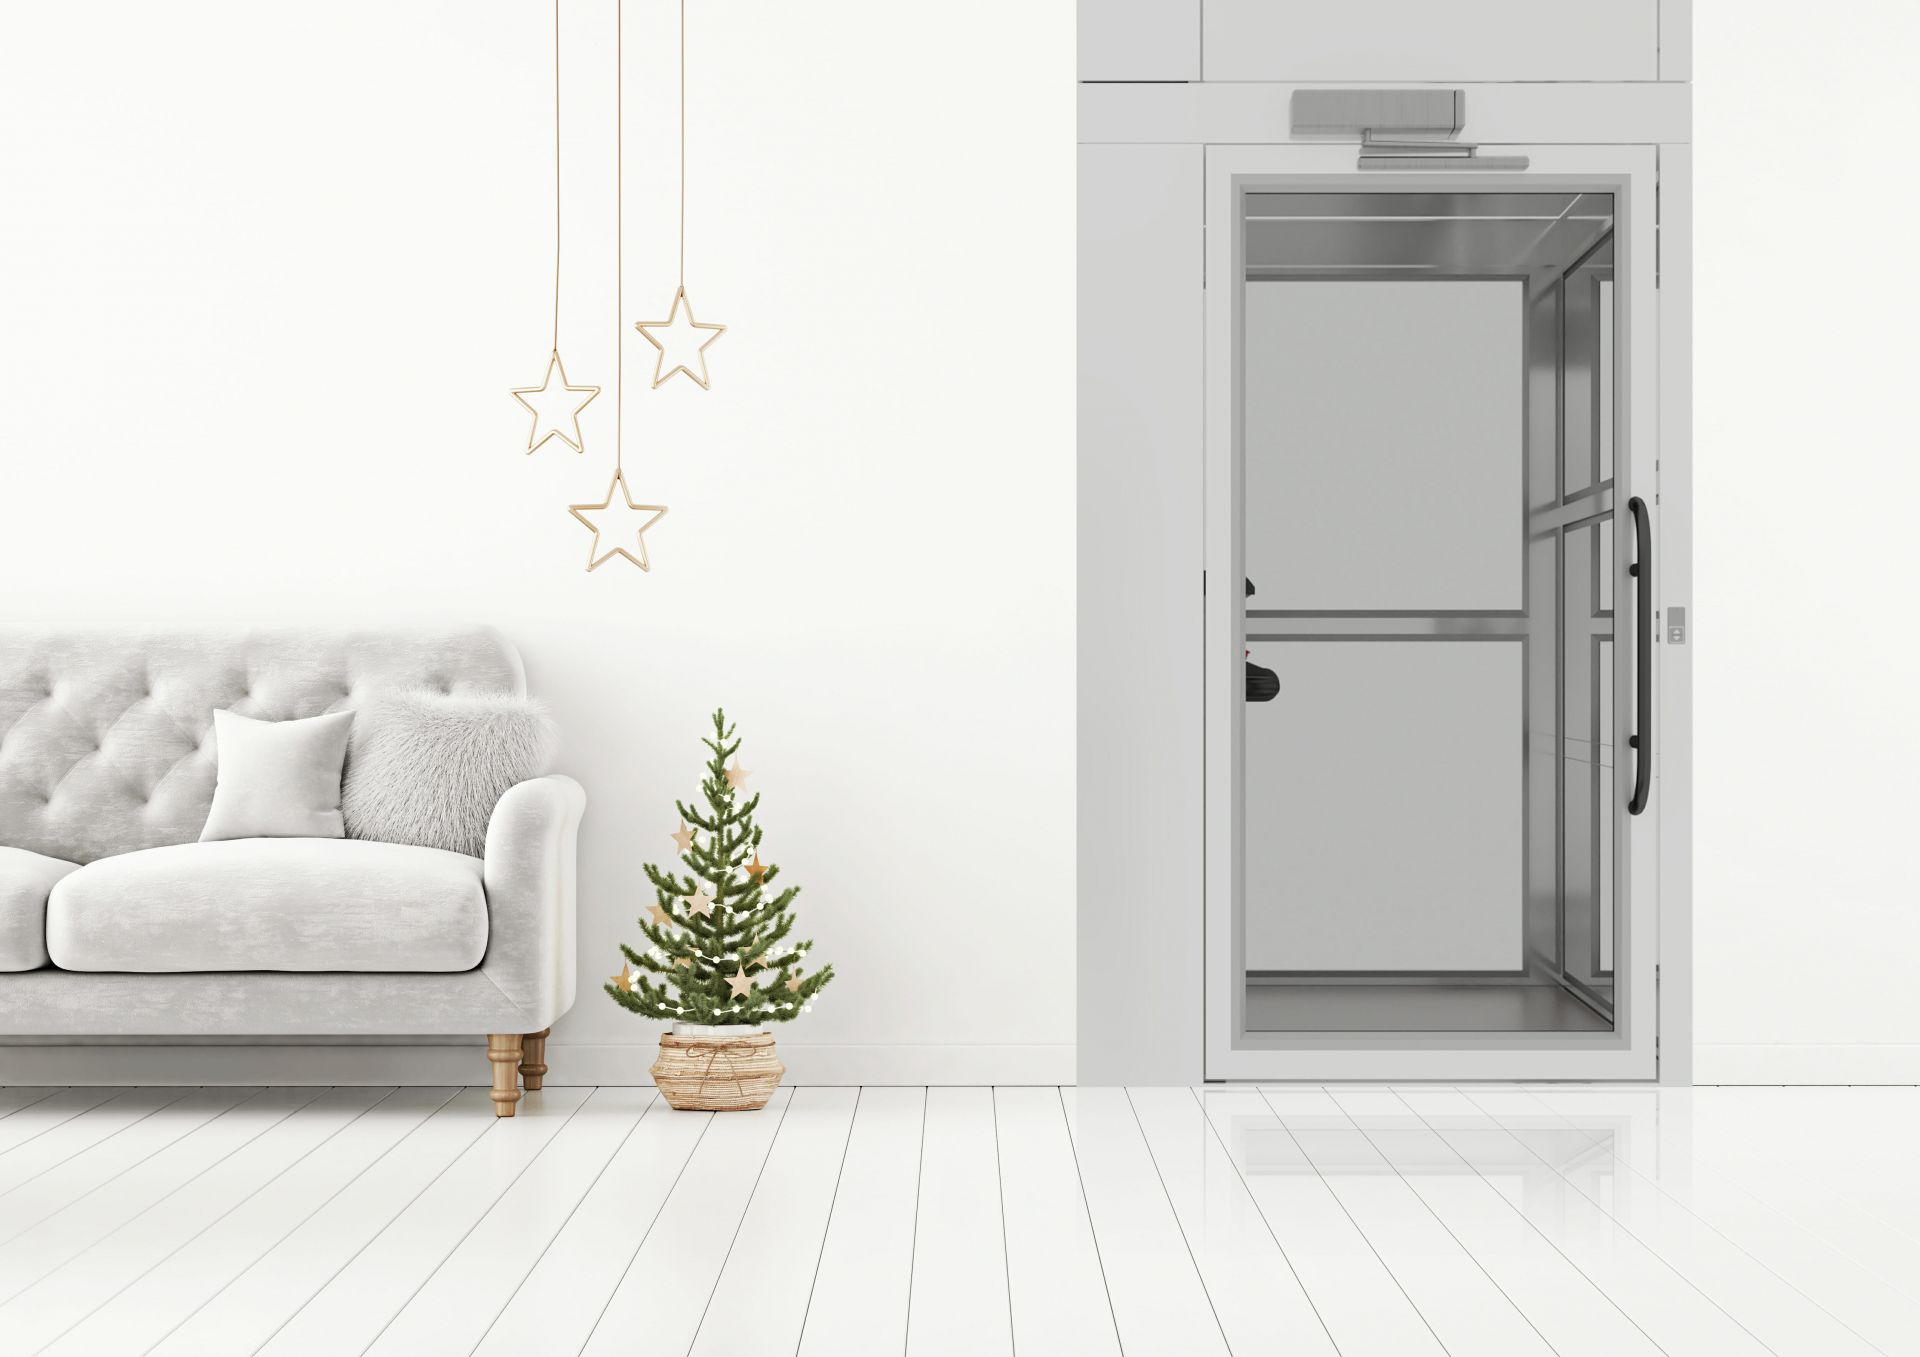 condato home lift in living roome